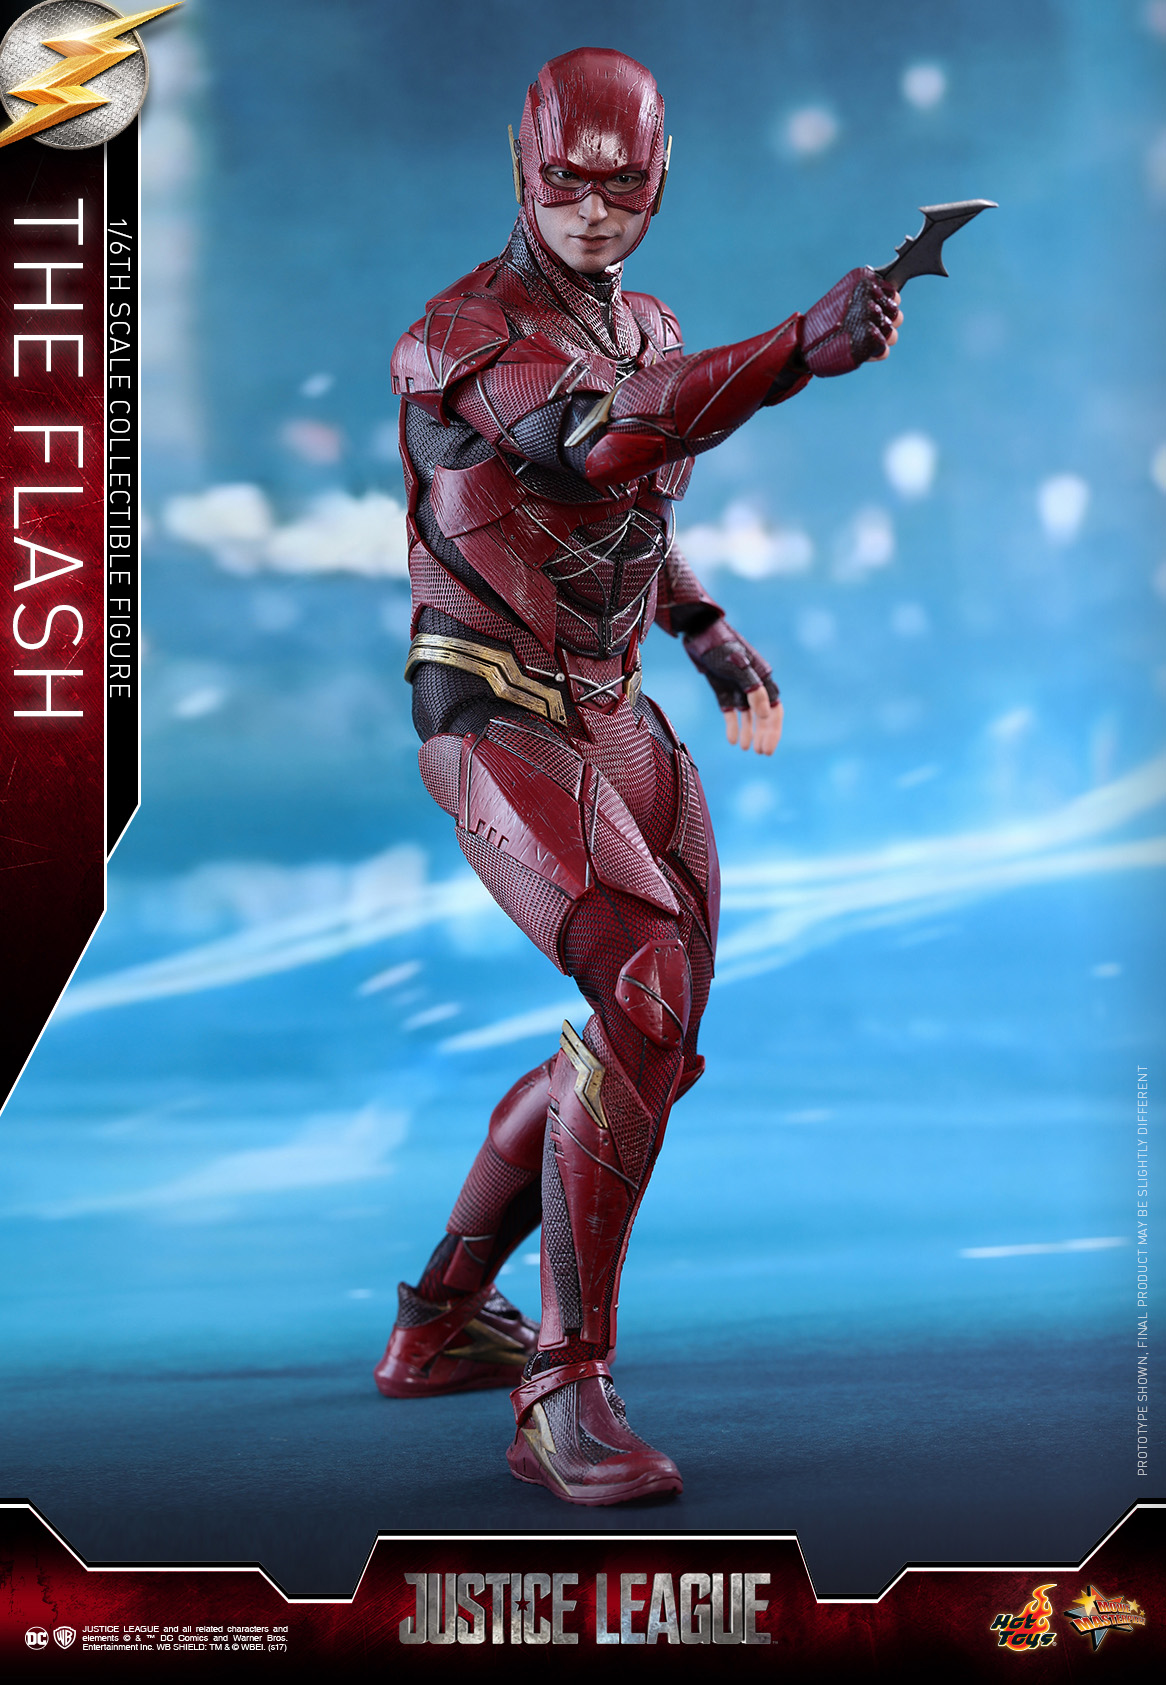 Hot Toys - Justice League - The Flash Collectible Figure_PR03.jpg